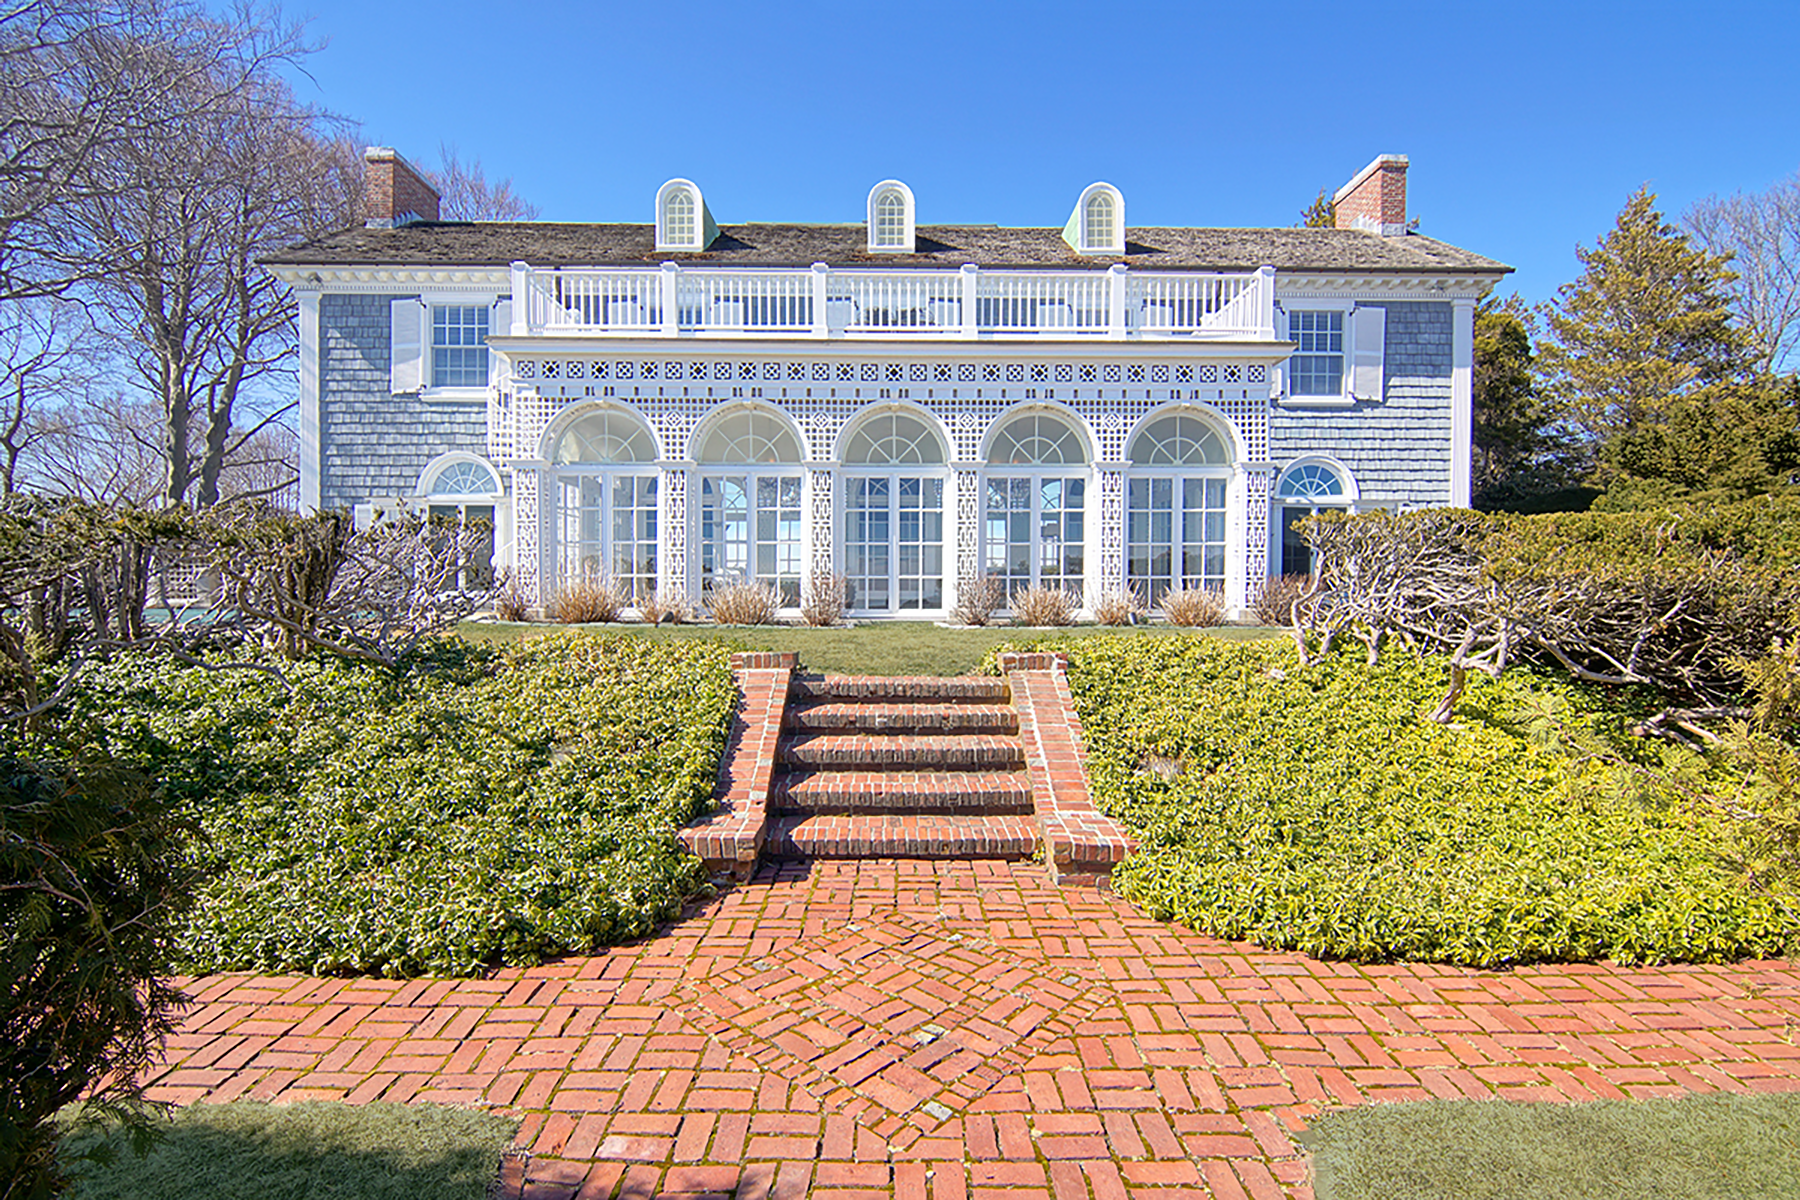 Single Family Home for Sale at The Studebaker Mansion at Rye Ledge 2595 Ocean Boulevard Rye, New Hampshire 03870 United States